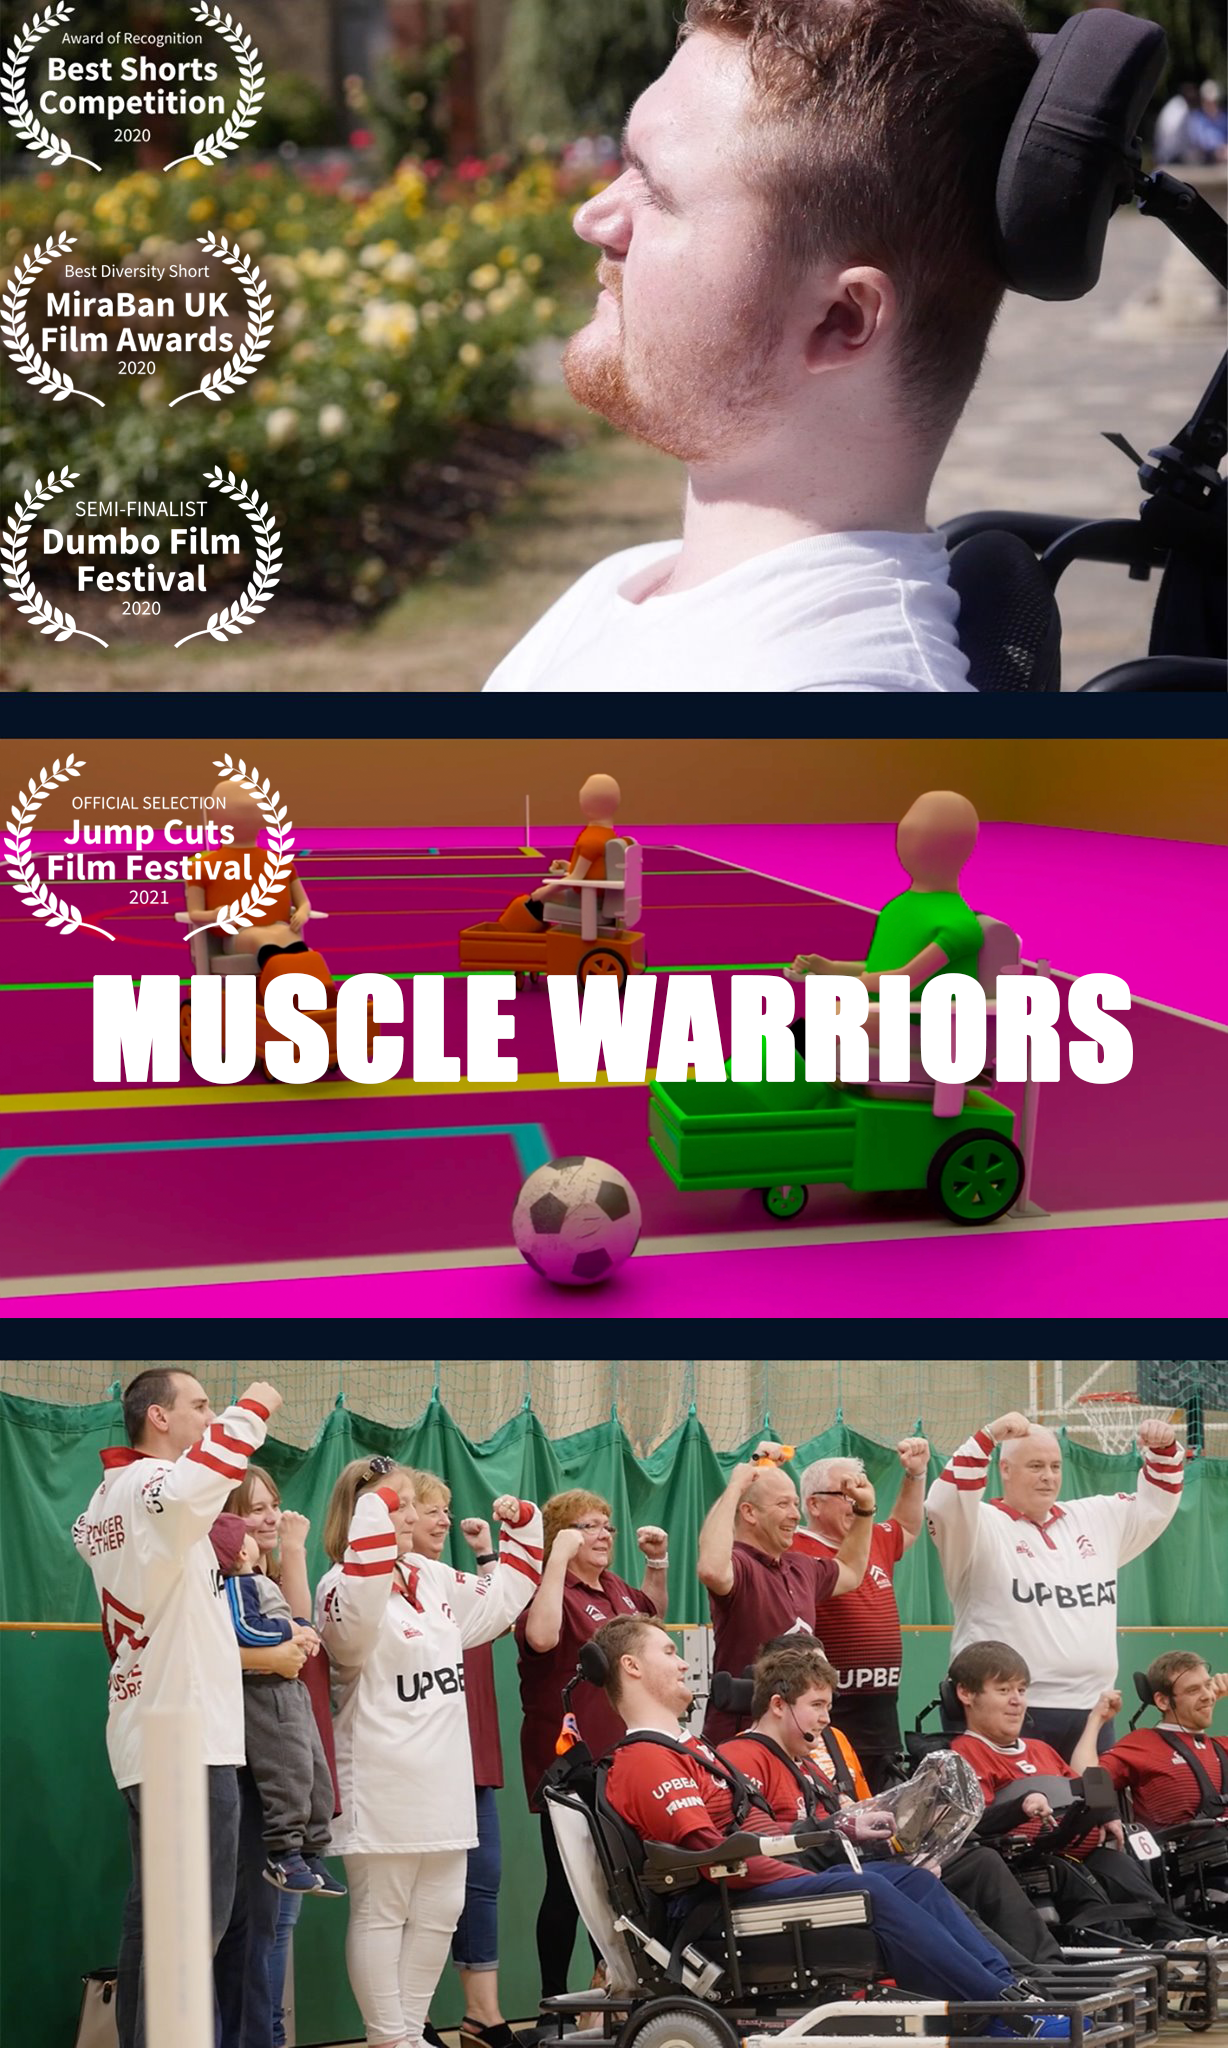 Muscle Warriors poster featuring Ryan O'Leary